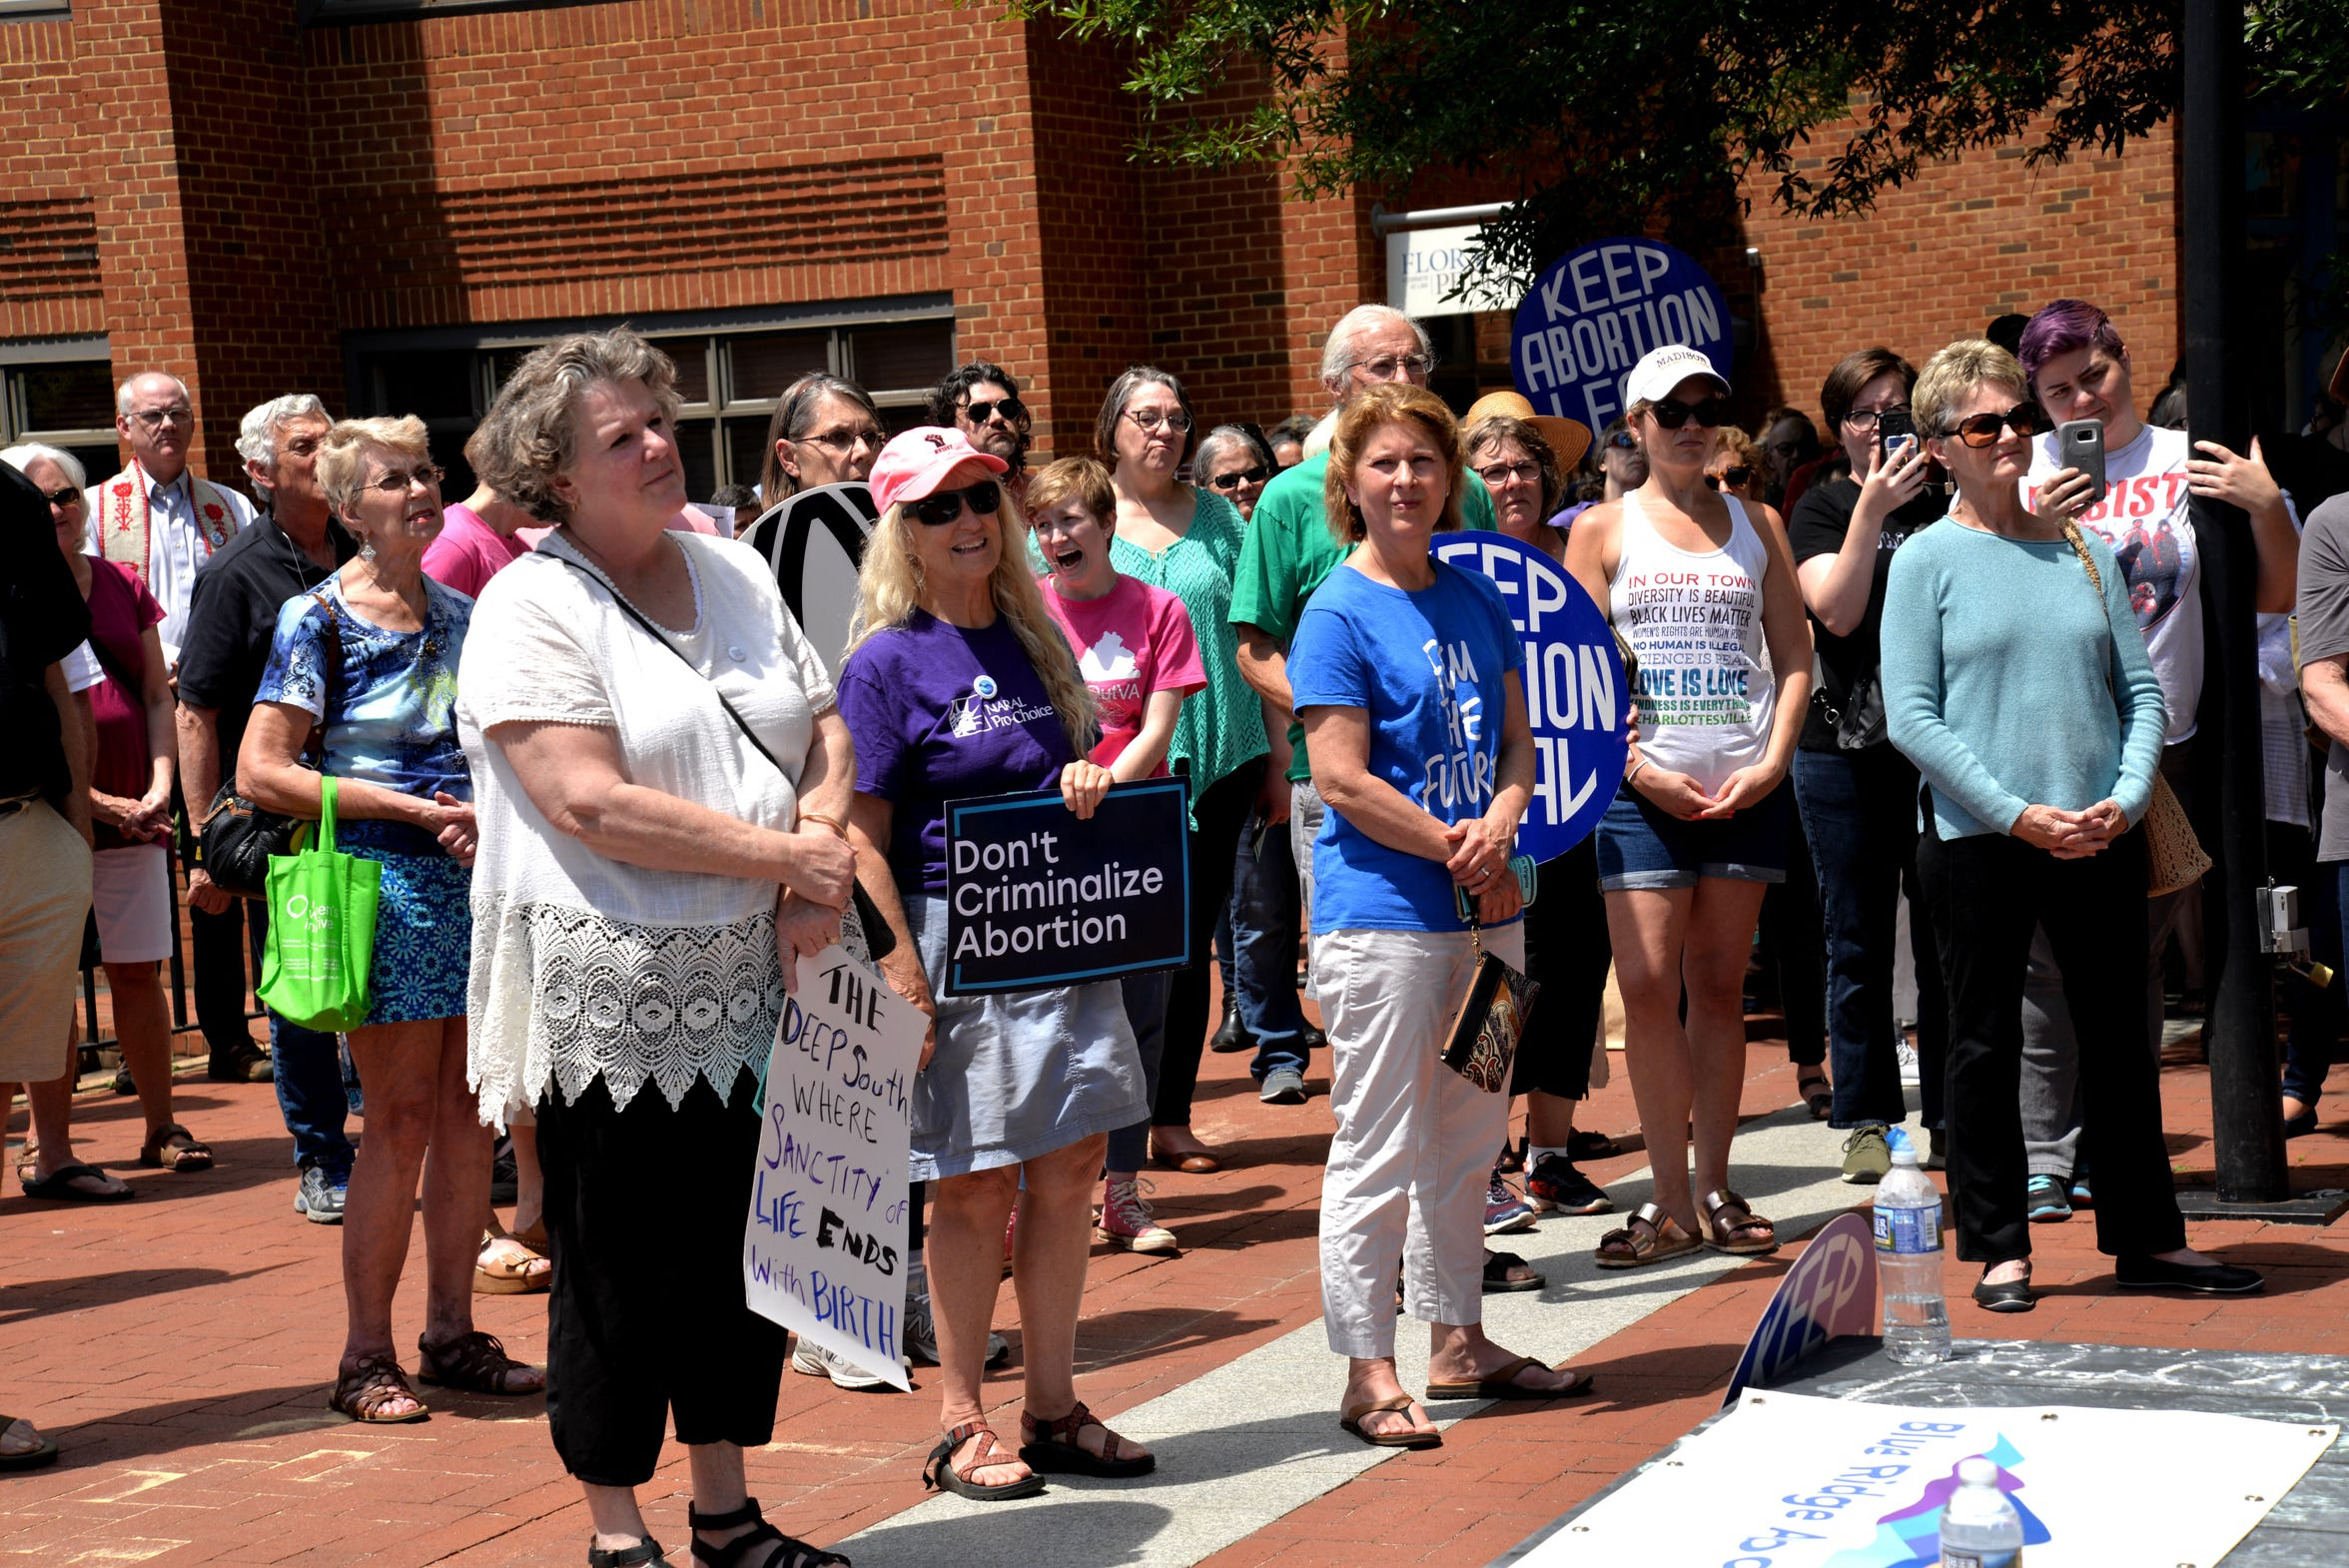 People gather on the downtown walking mall in Charlottesville on May 21, 2019 for an abortion access rally organized by the Blue Ridge Abortion Fund and Charlottesville National Organization of Women.